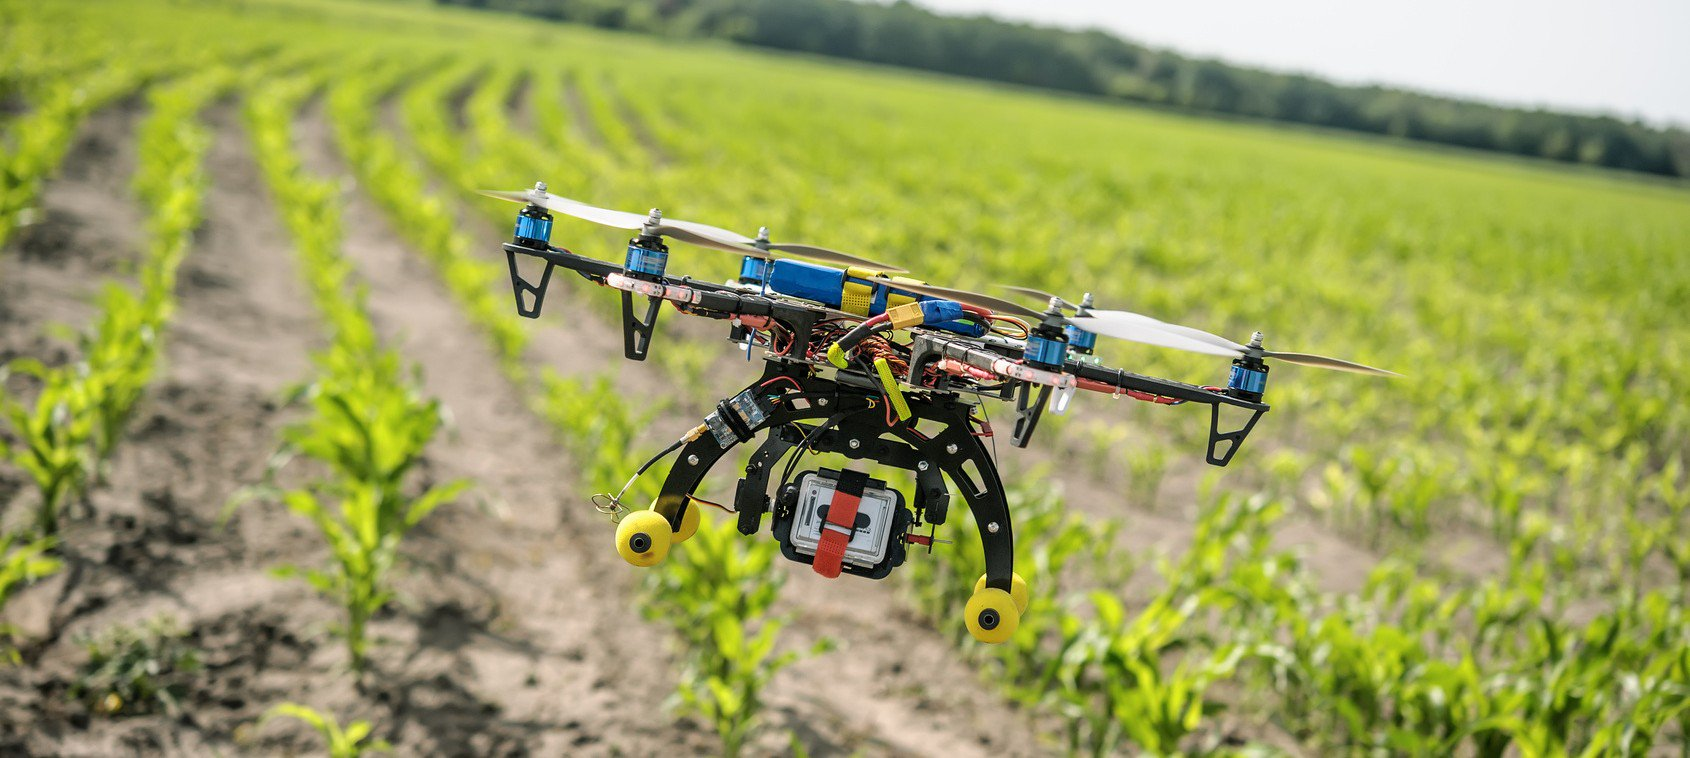 A drone flying over an agricultural field